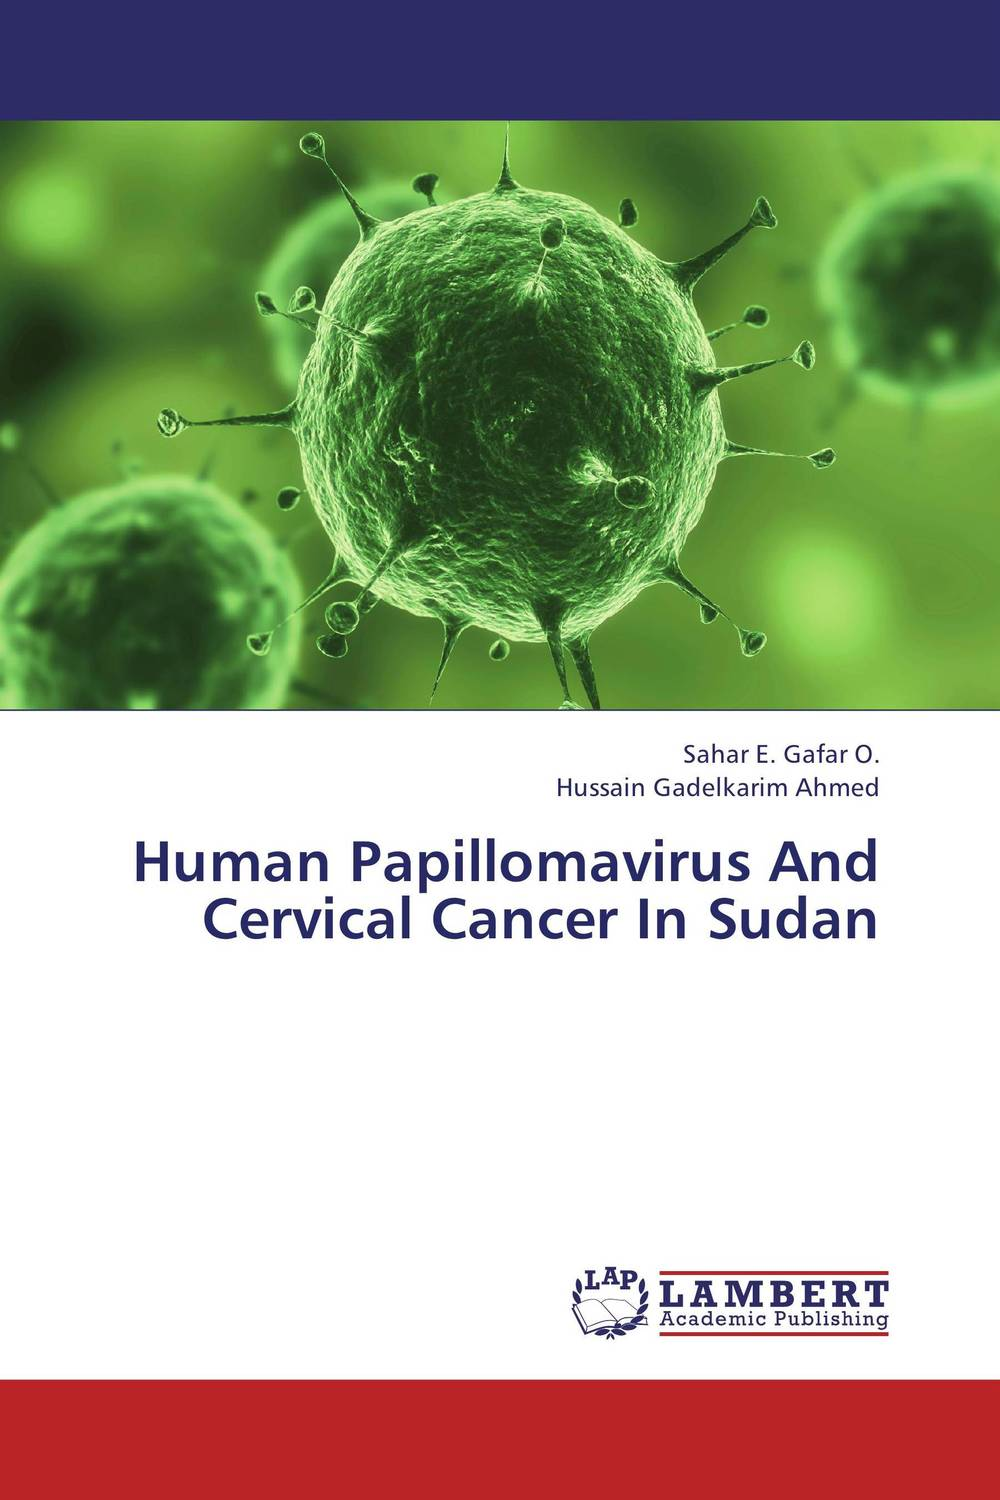 Human Papillomavirus And Cervical Cancer In Sudan viruses cell transformation and cancer 5